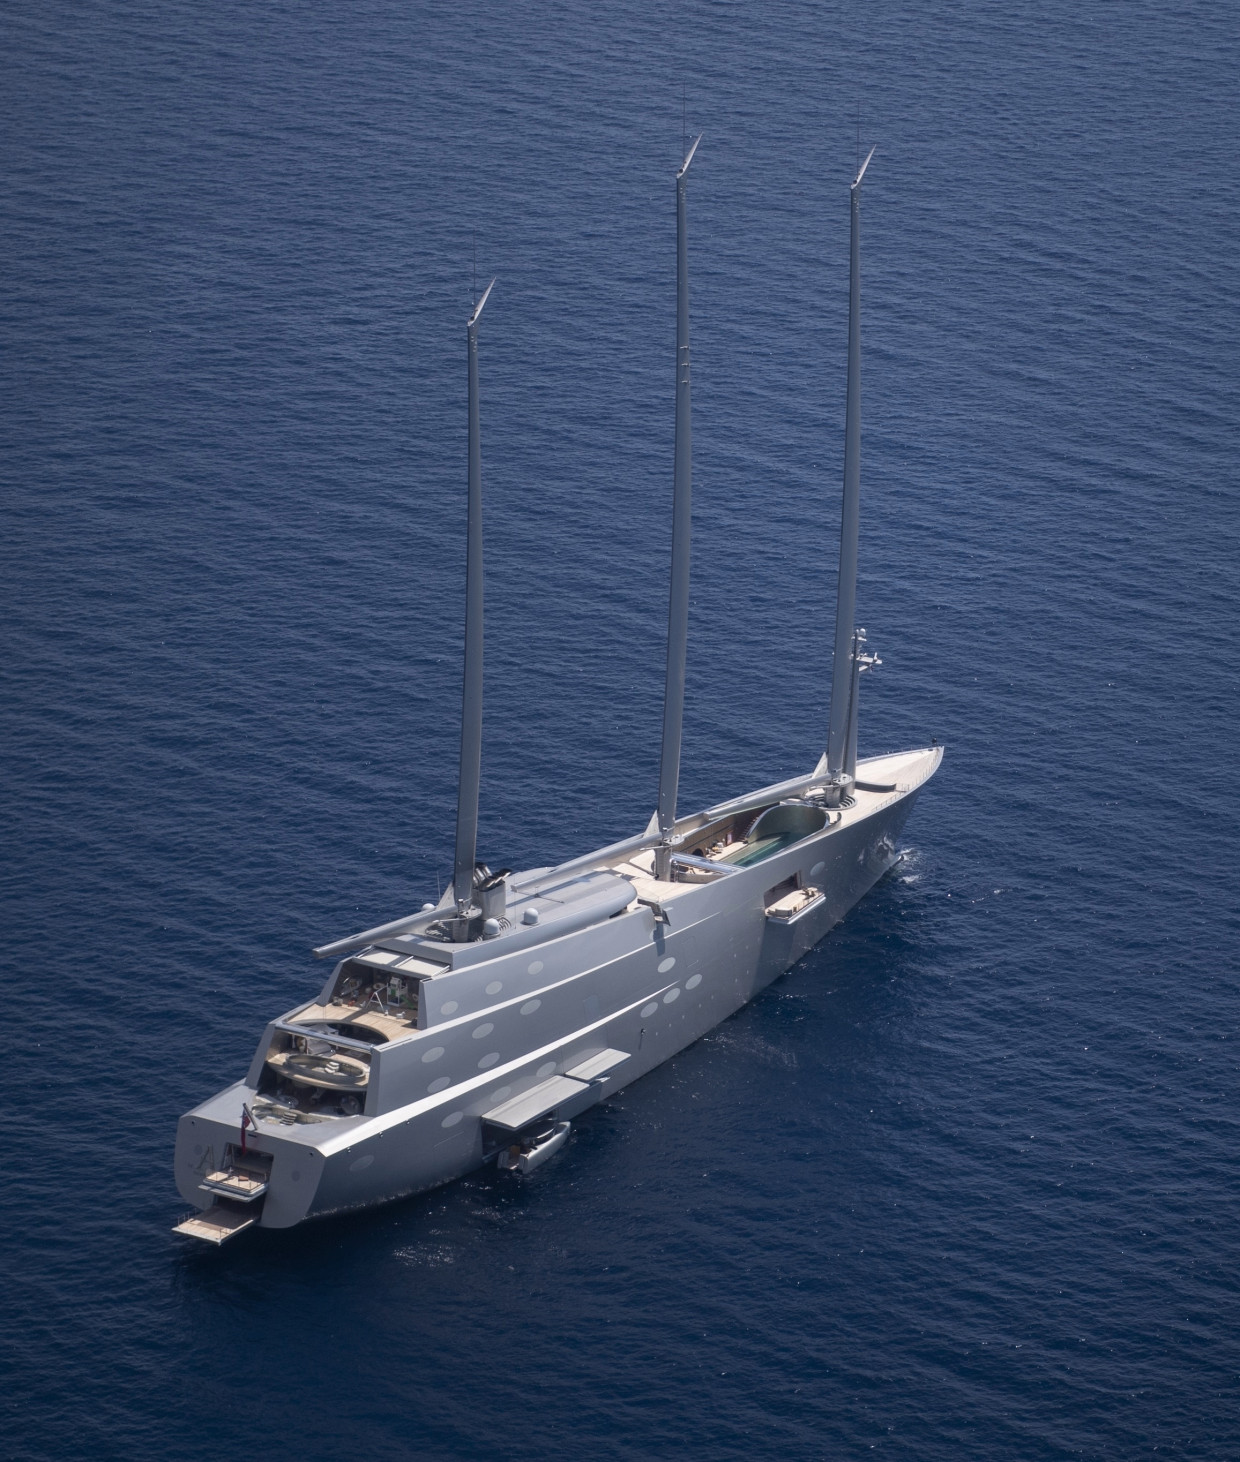 Sailing Yacht A >> Russian Billionaire S 143m Sailing Yacht A Spotted In Monaco